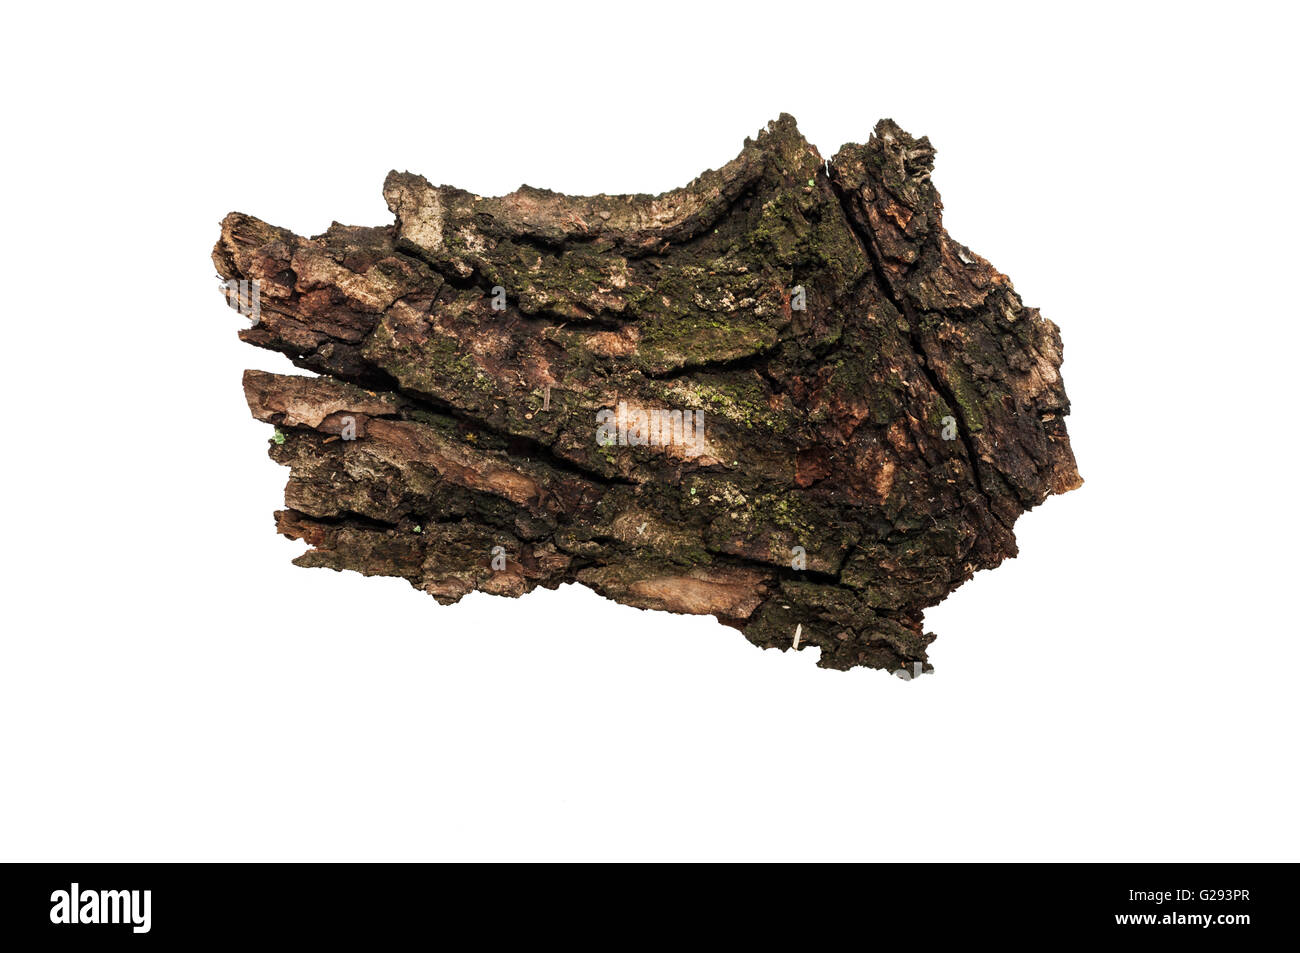 Piece of old bark or rind isolated on white background - Stock Image